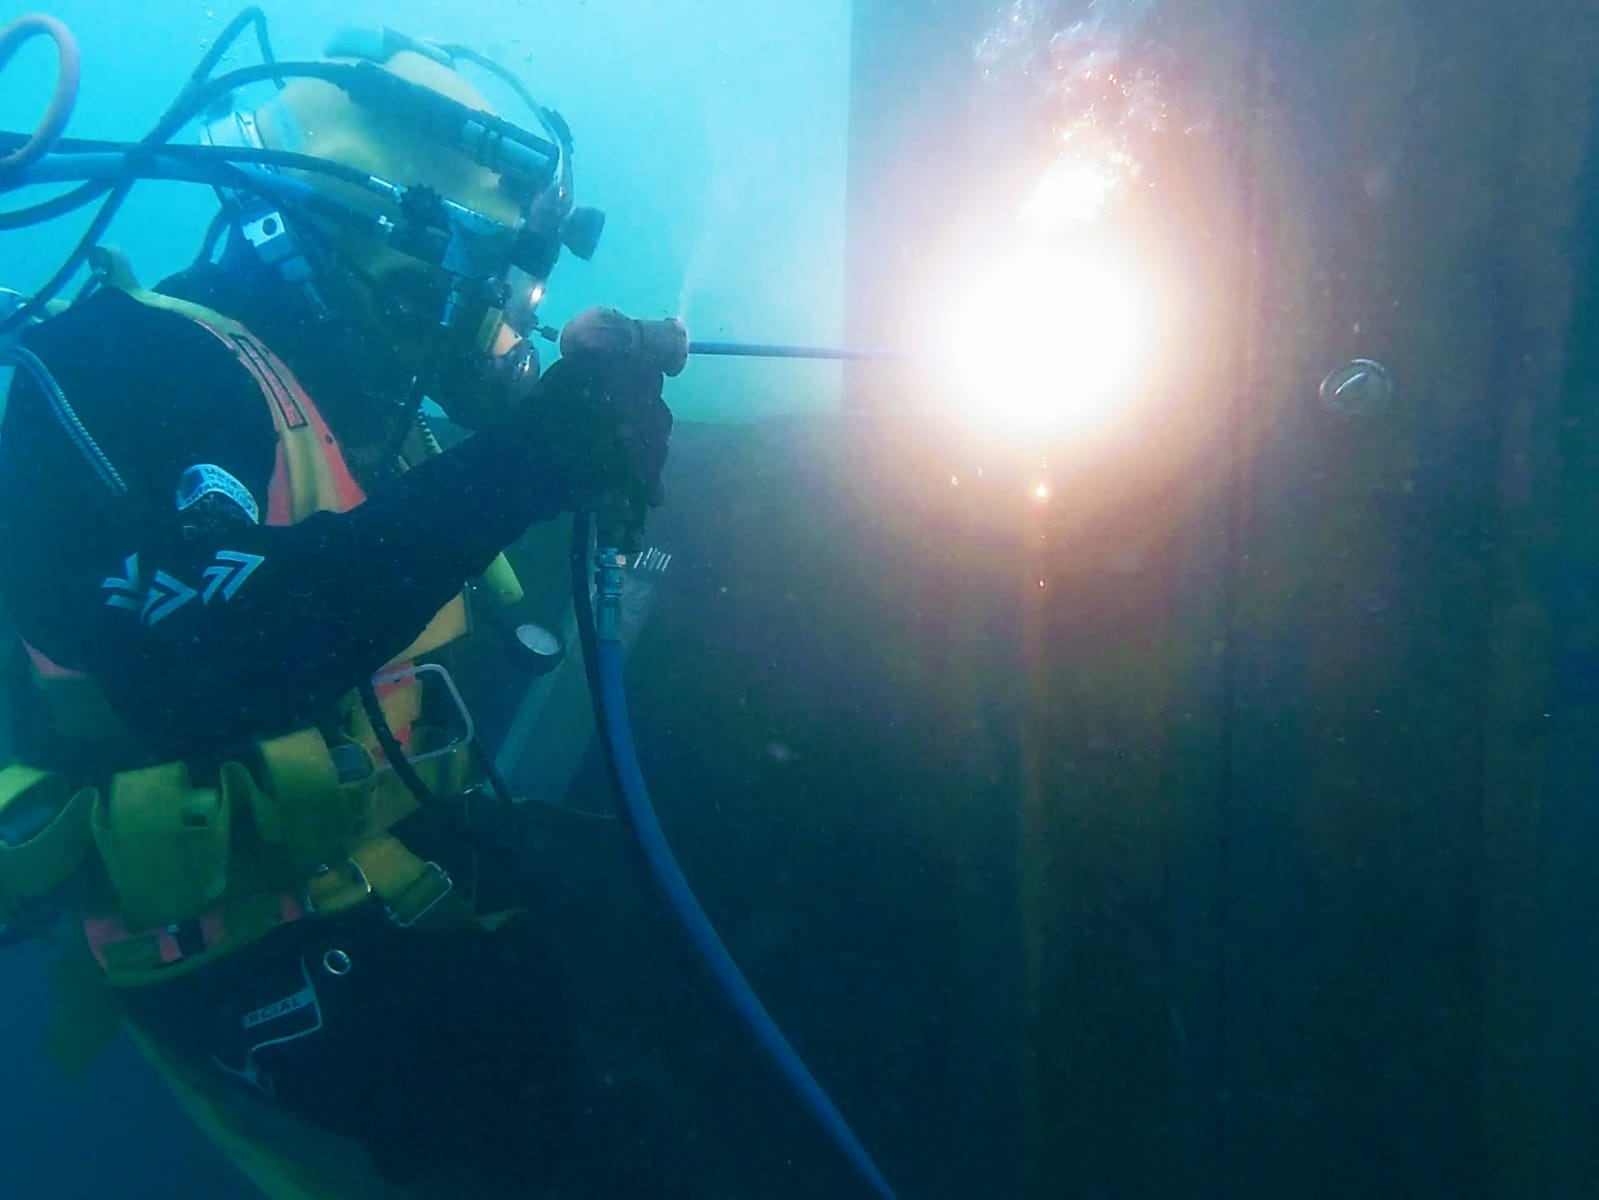 Diver Dave Wyatt Burning the Sheet Piles to Level off the Slipway (Credit: Tom Cameron)